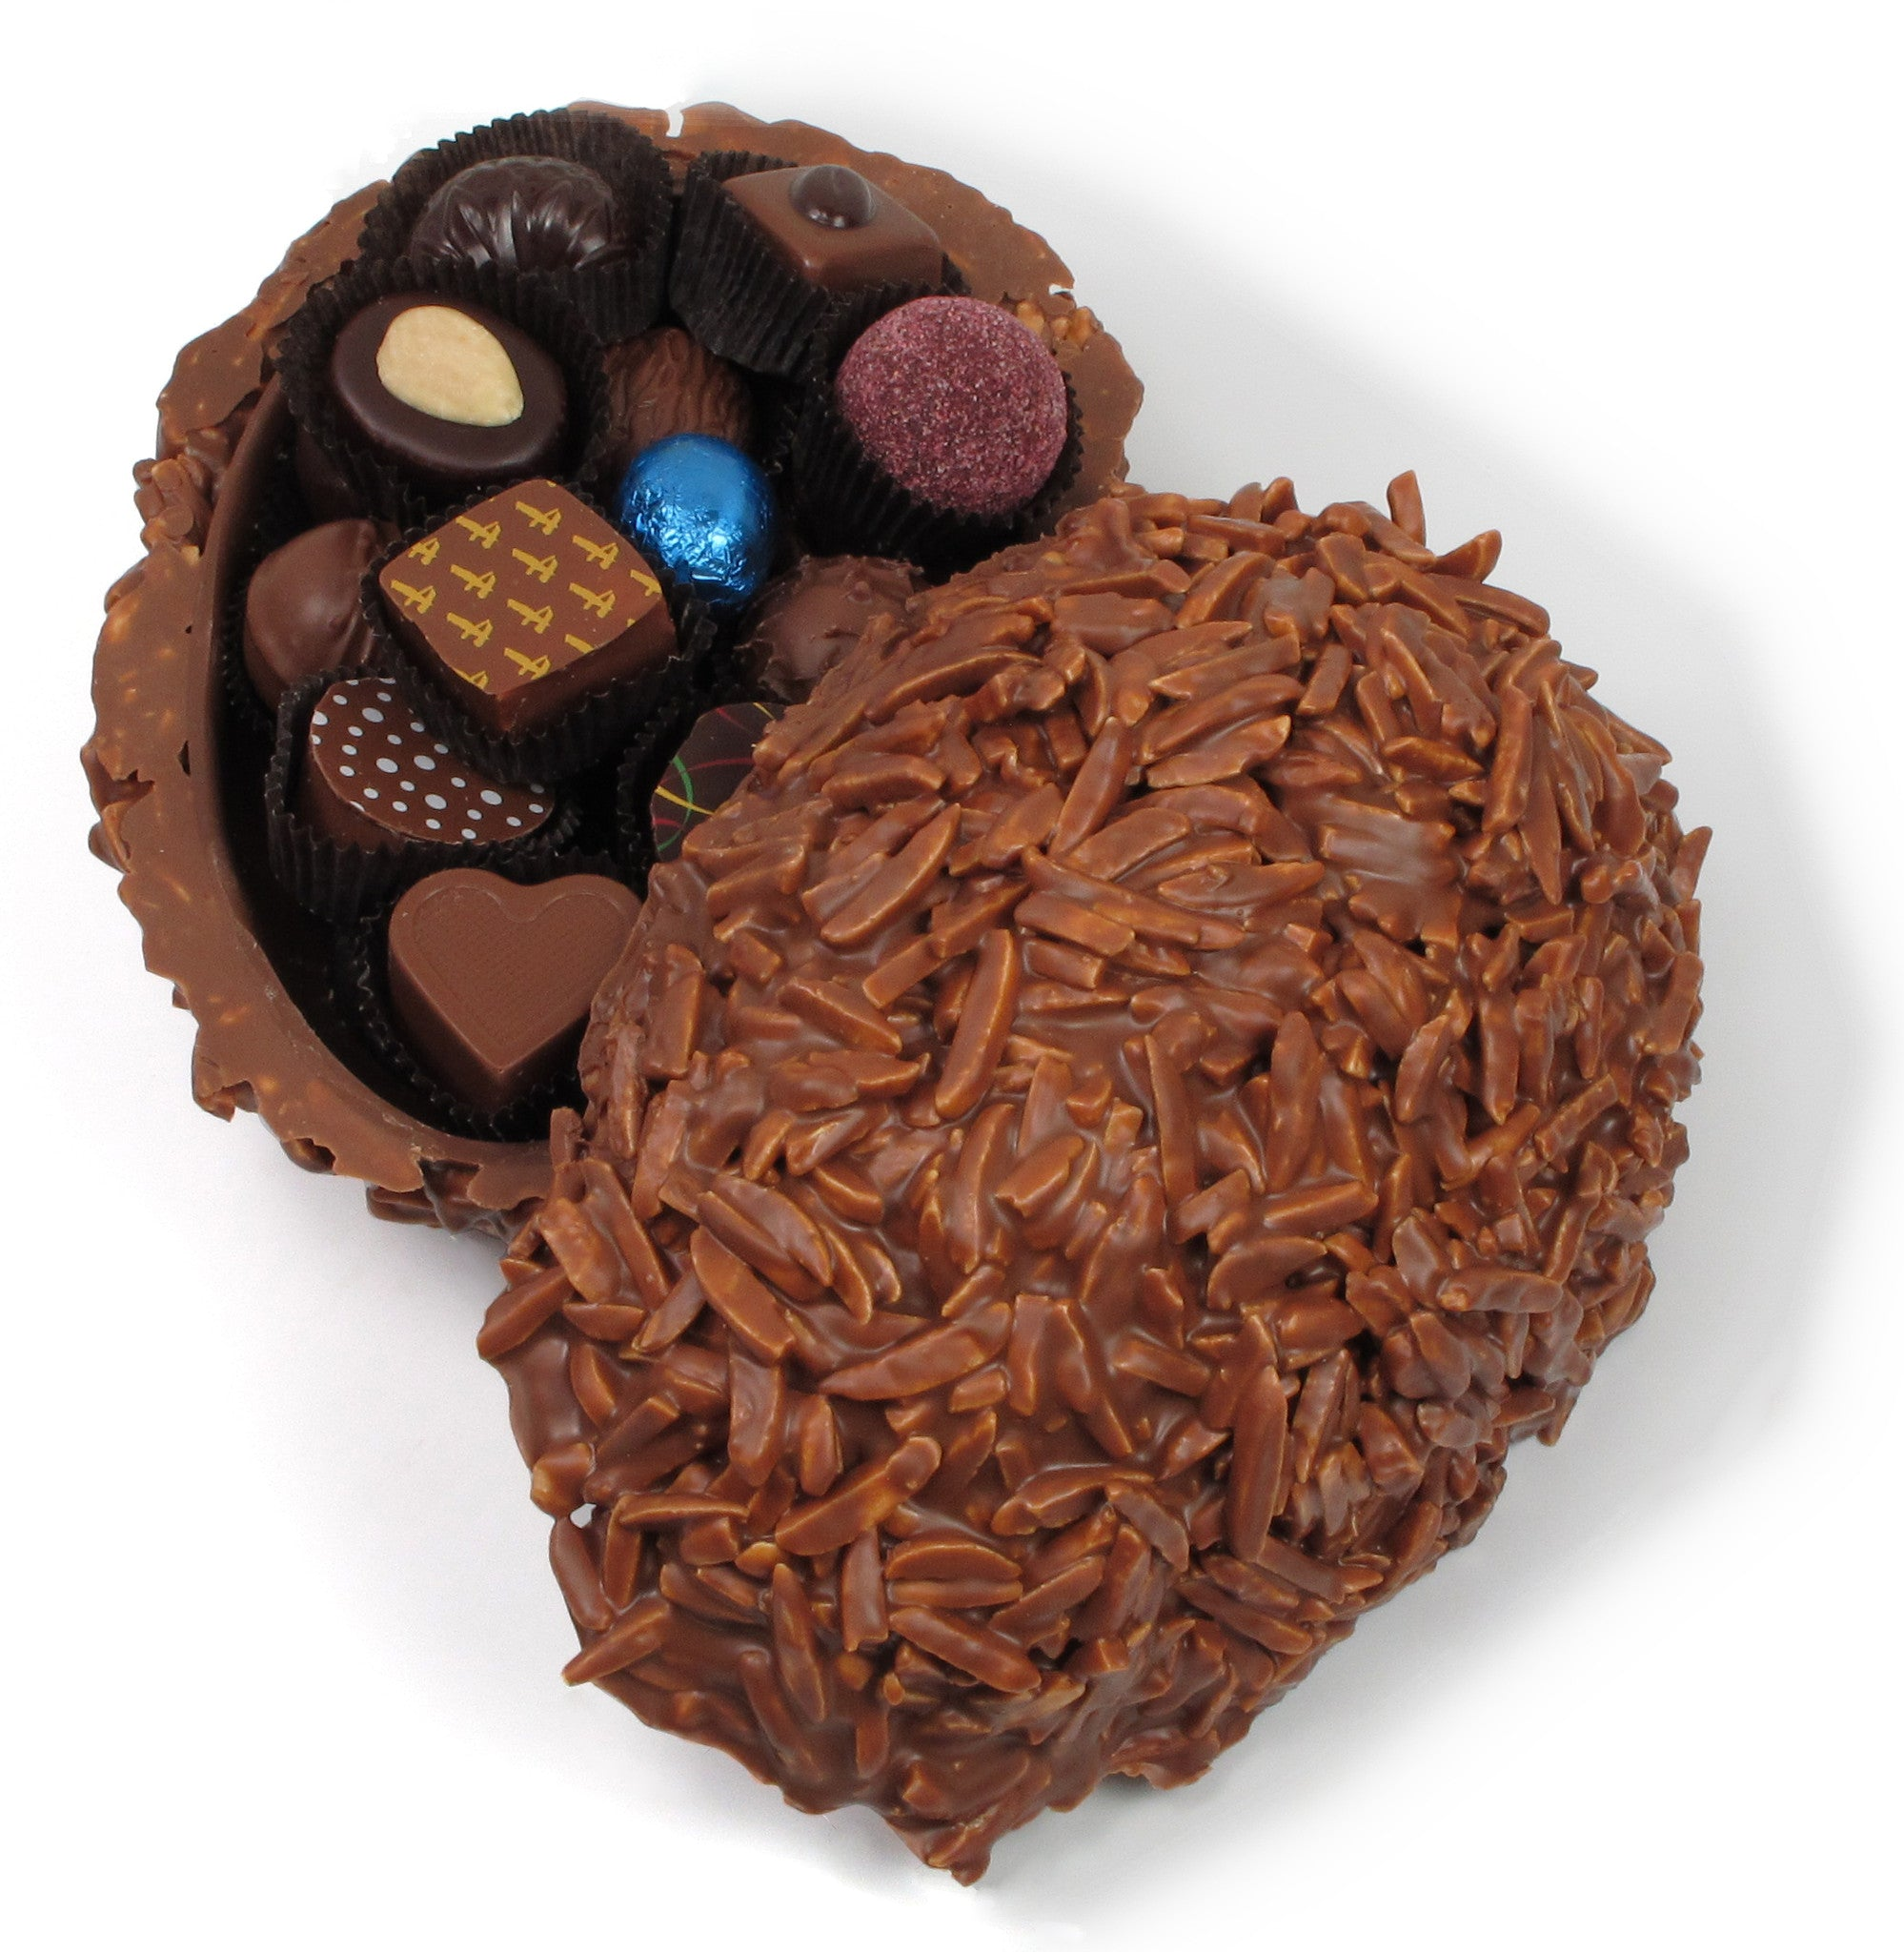 Chocolate Rocher Egg with Candies + Truffles